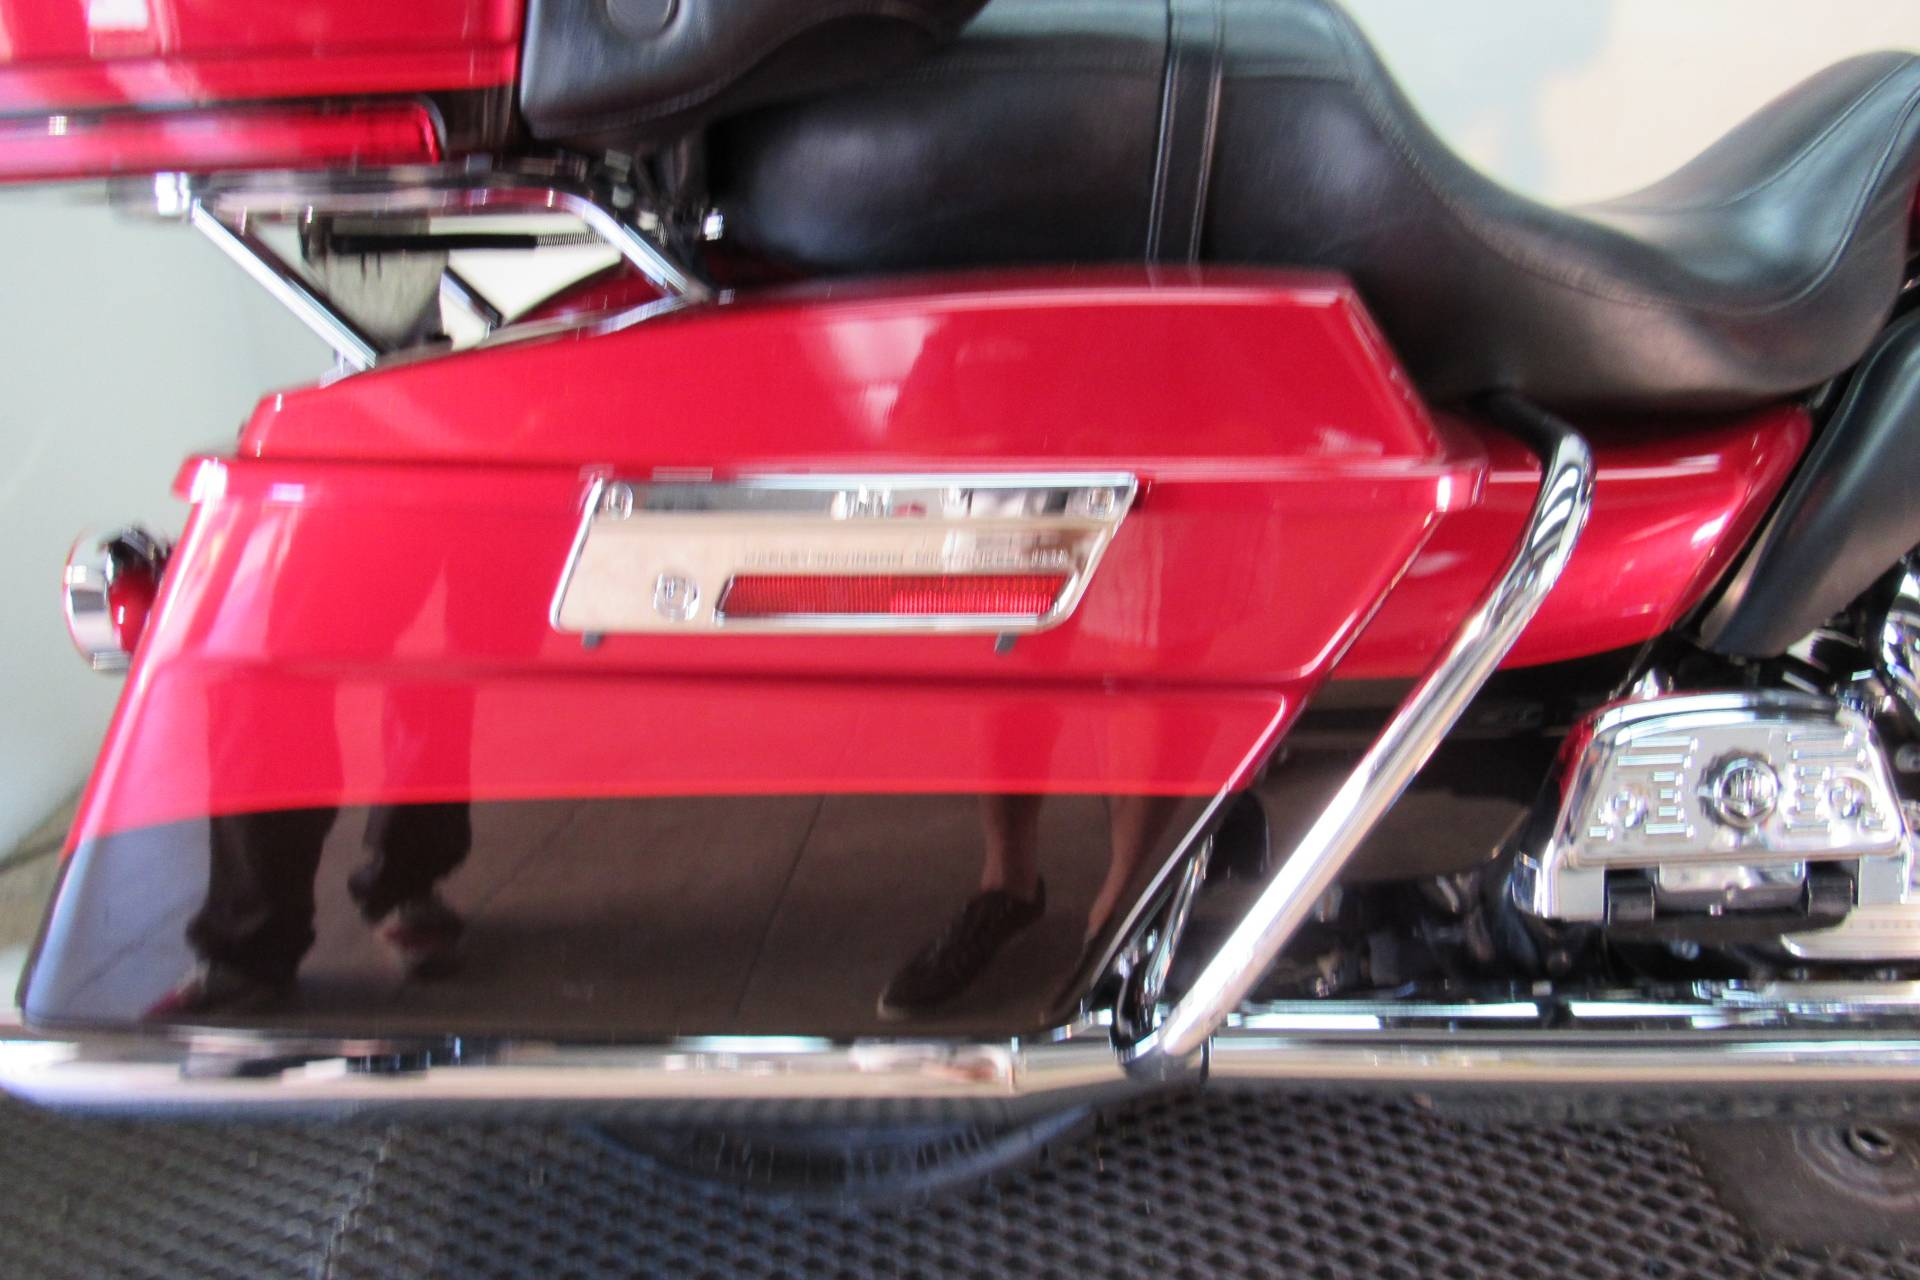 2013 Harley-Davidson Electra Glide® Ultra Limited in Temecula, California - Photo 15